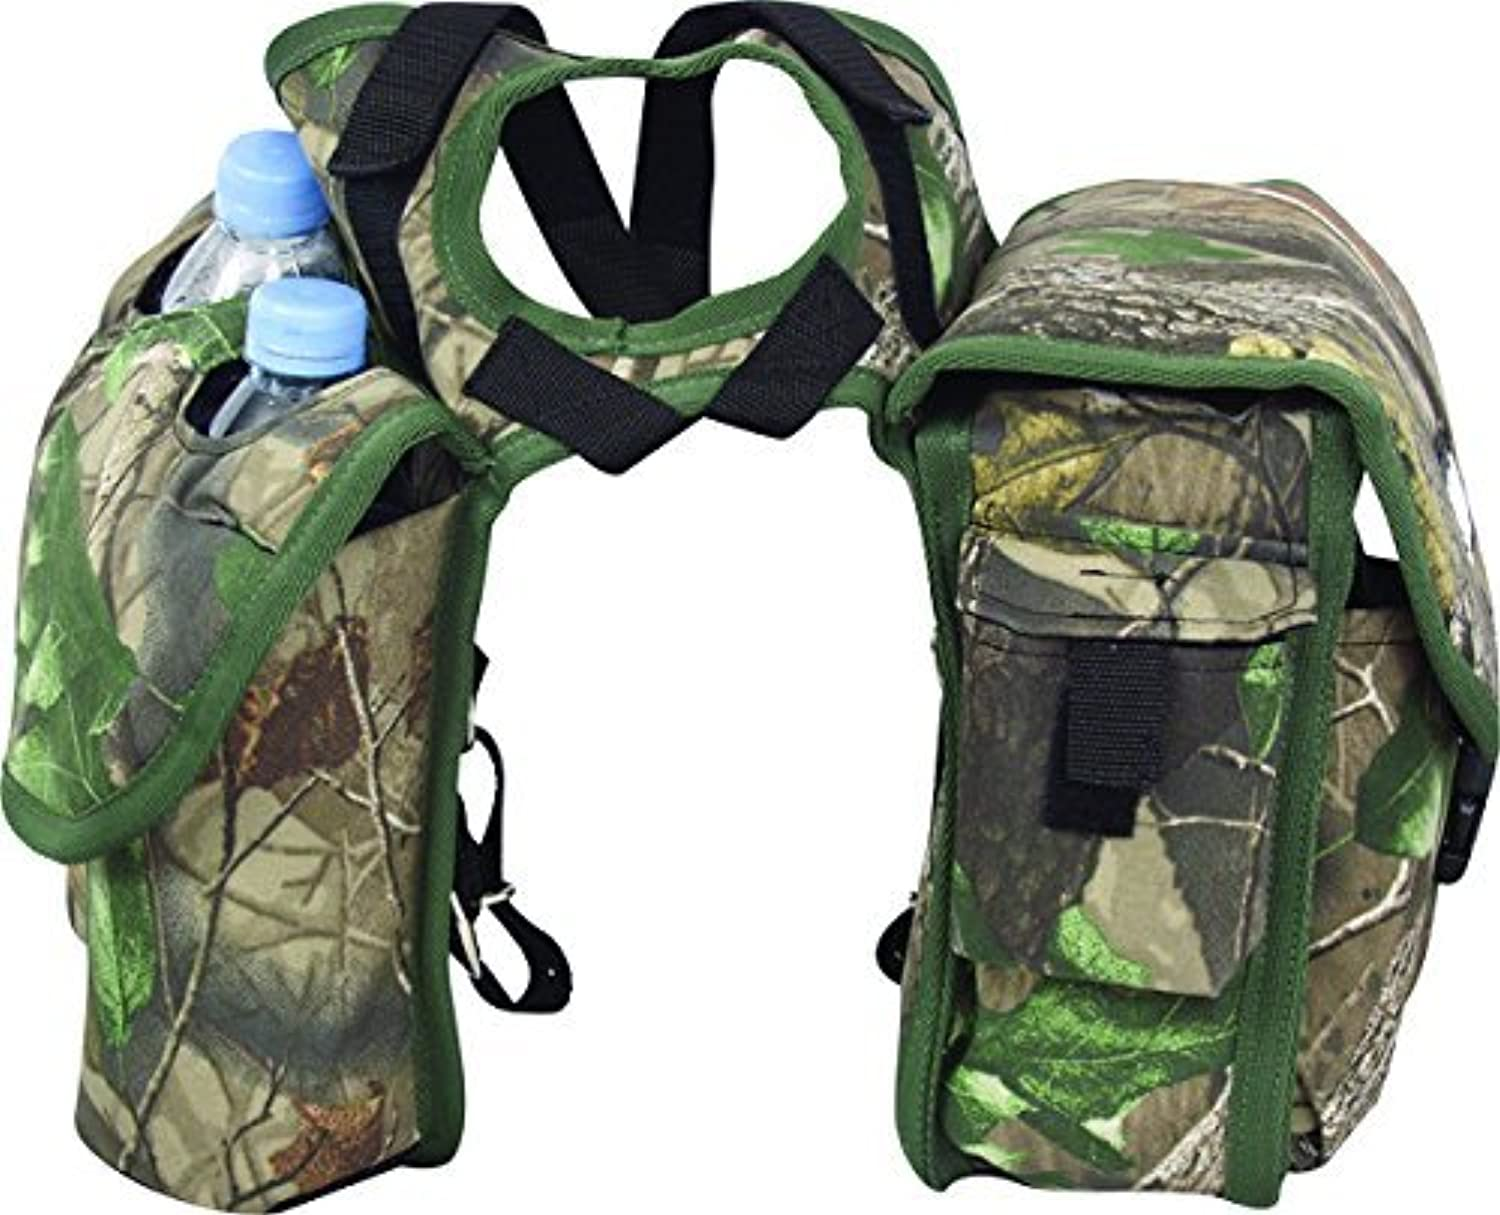 Cashel Quality Deluxe Medium Horse Saddle Pommel Horn Bag Insulated Padded Pockets Two Water Bottle Pockets Camera Cell Phone Pocket 600 Denier Material Size Medium color Choice